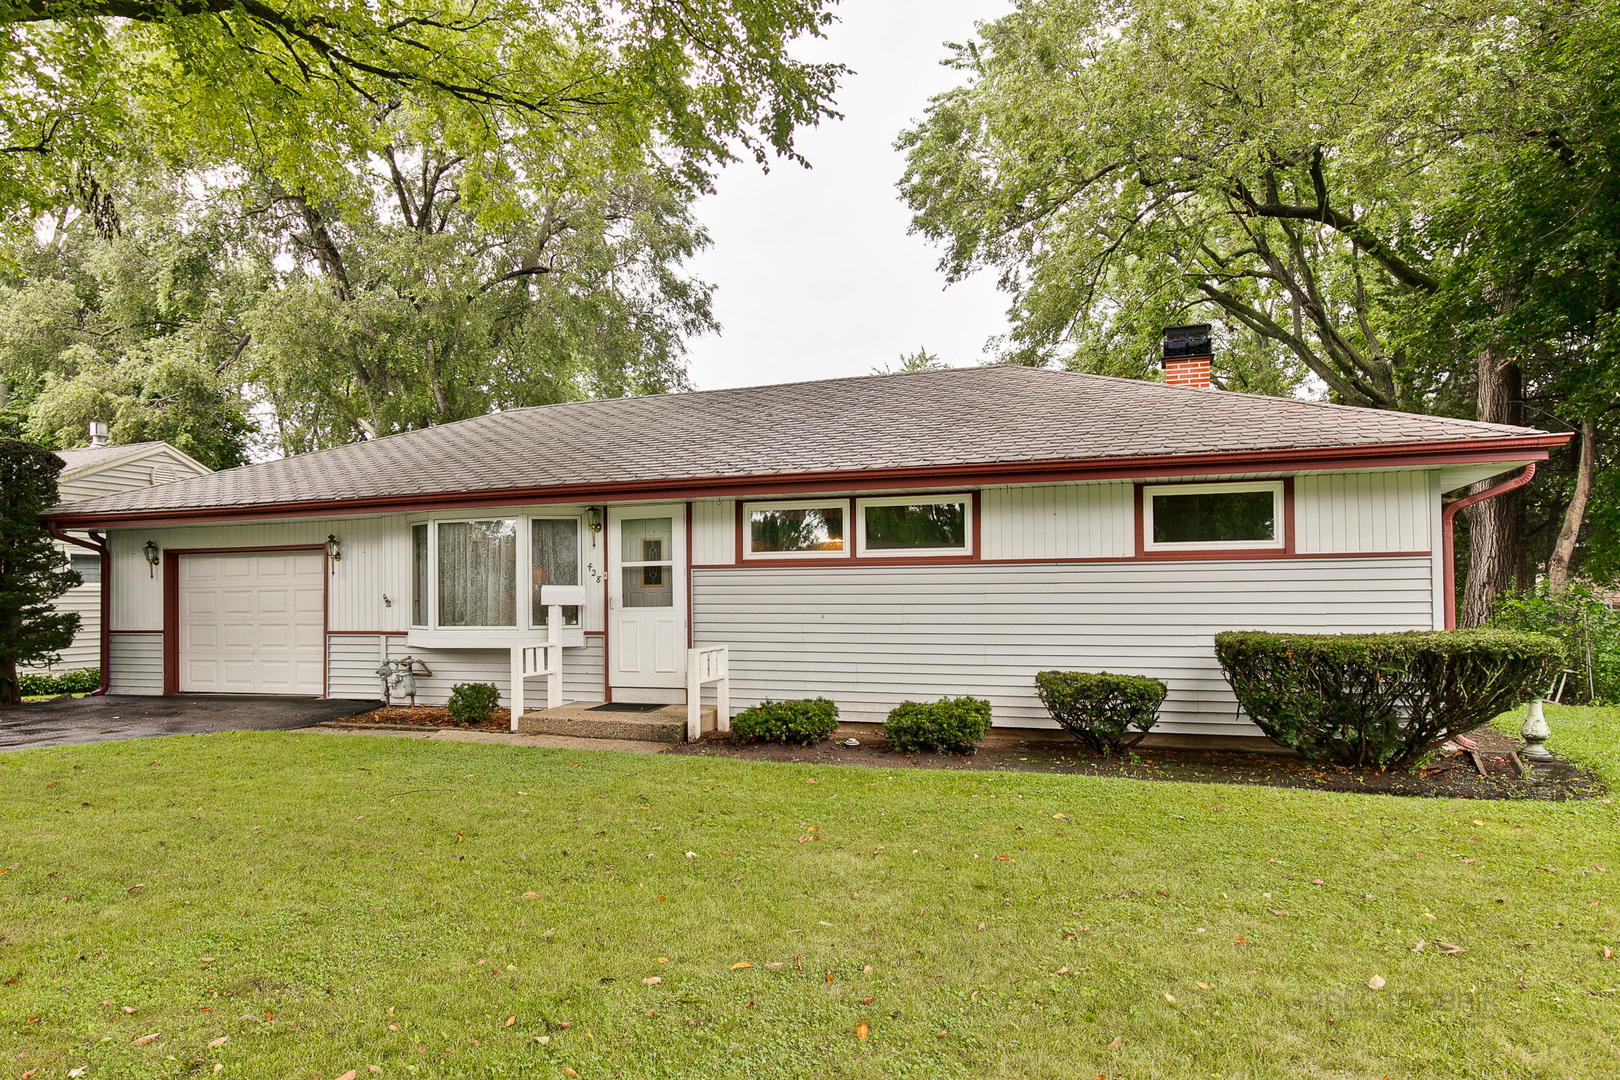 Photo for 428 W James Way, Cary, IL 60013 (MLS # 10493297)